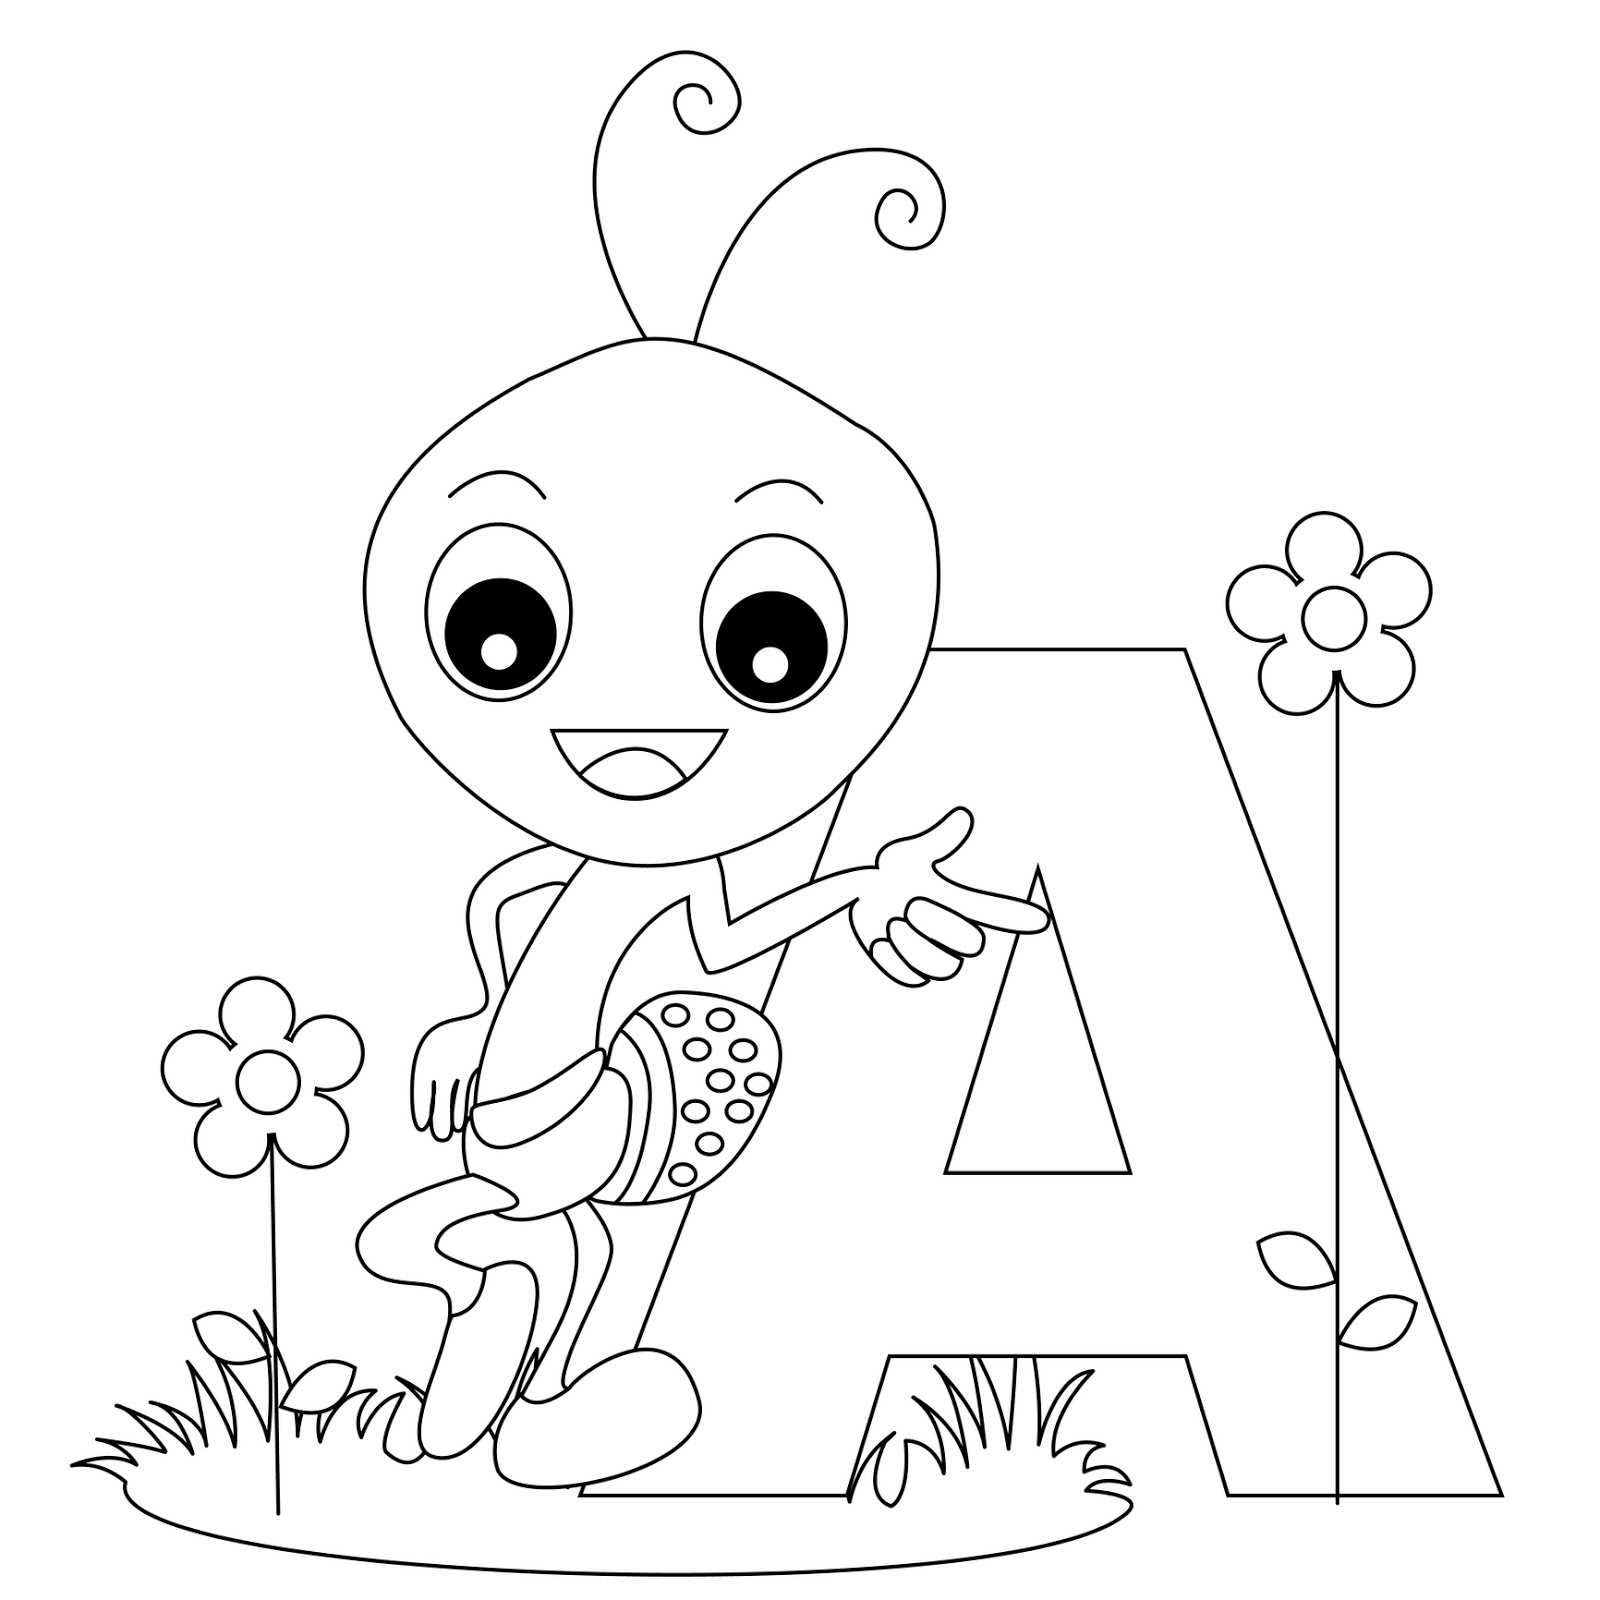 coloring pages alphabet preschool worksheets-#26